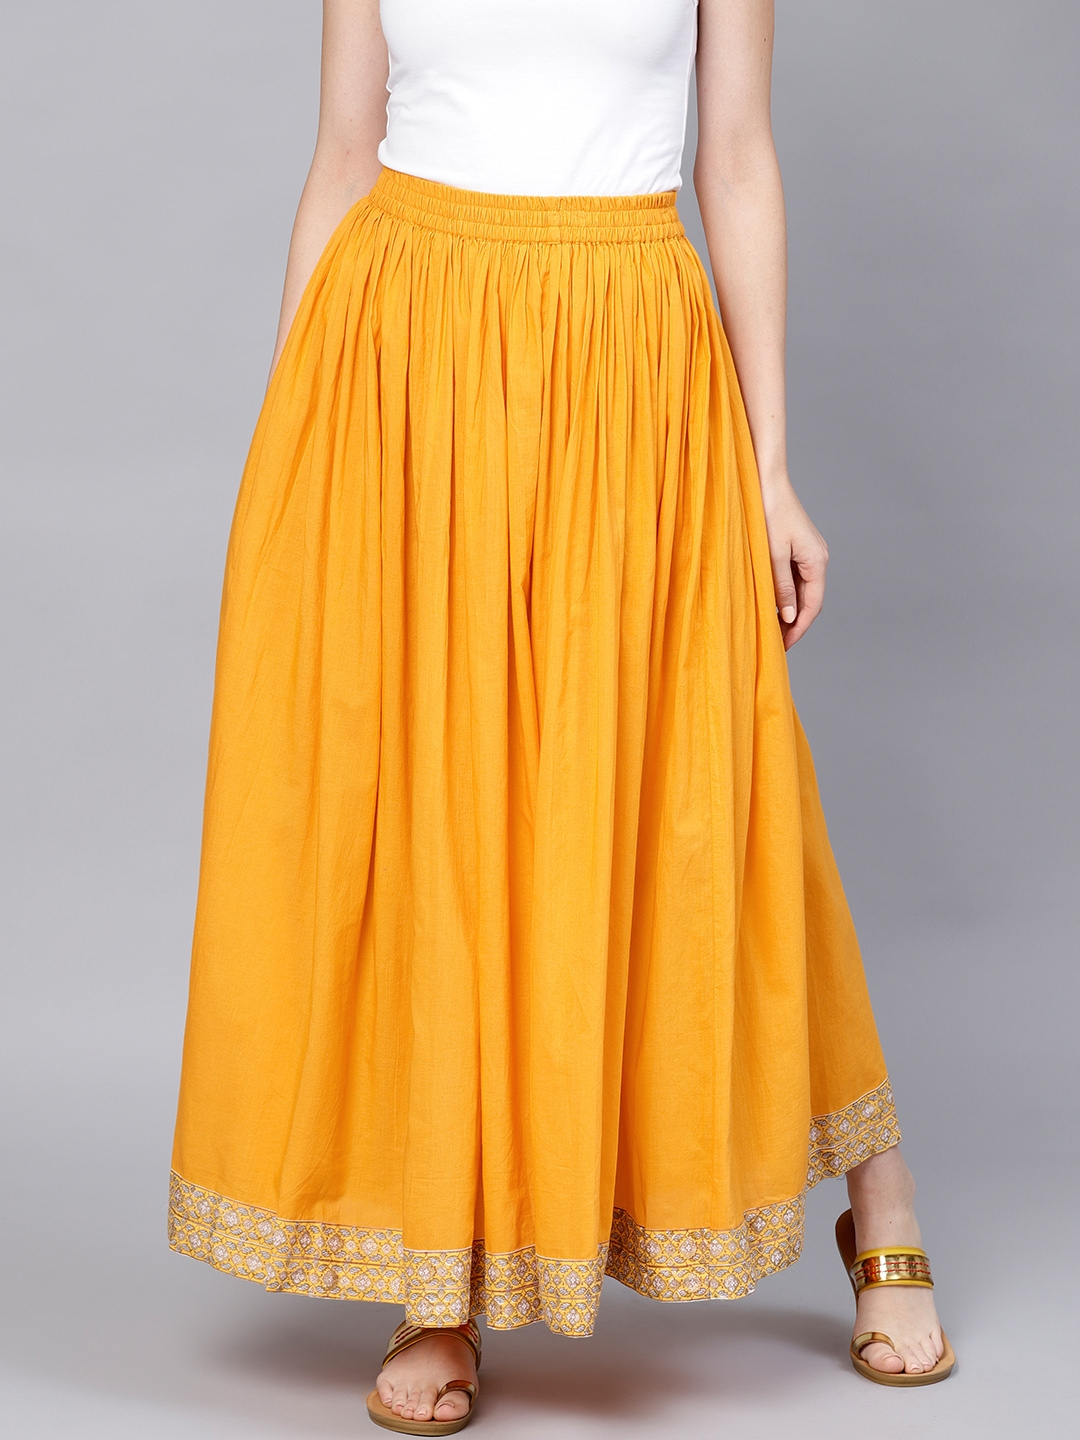 86a86e5b7 Buy Nayo Women Yellow Solid Maxi Flared Skirt - Skirts for Women ...